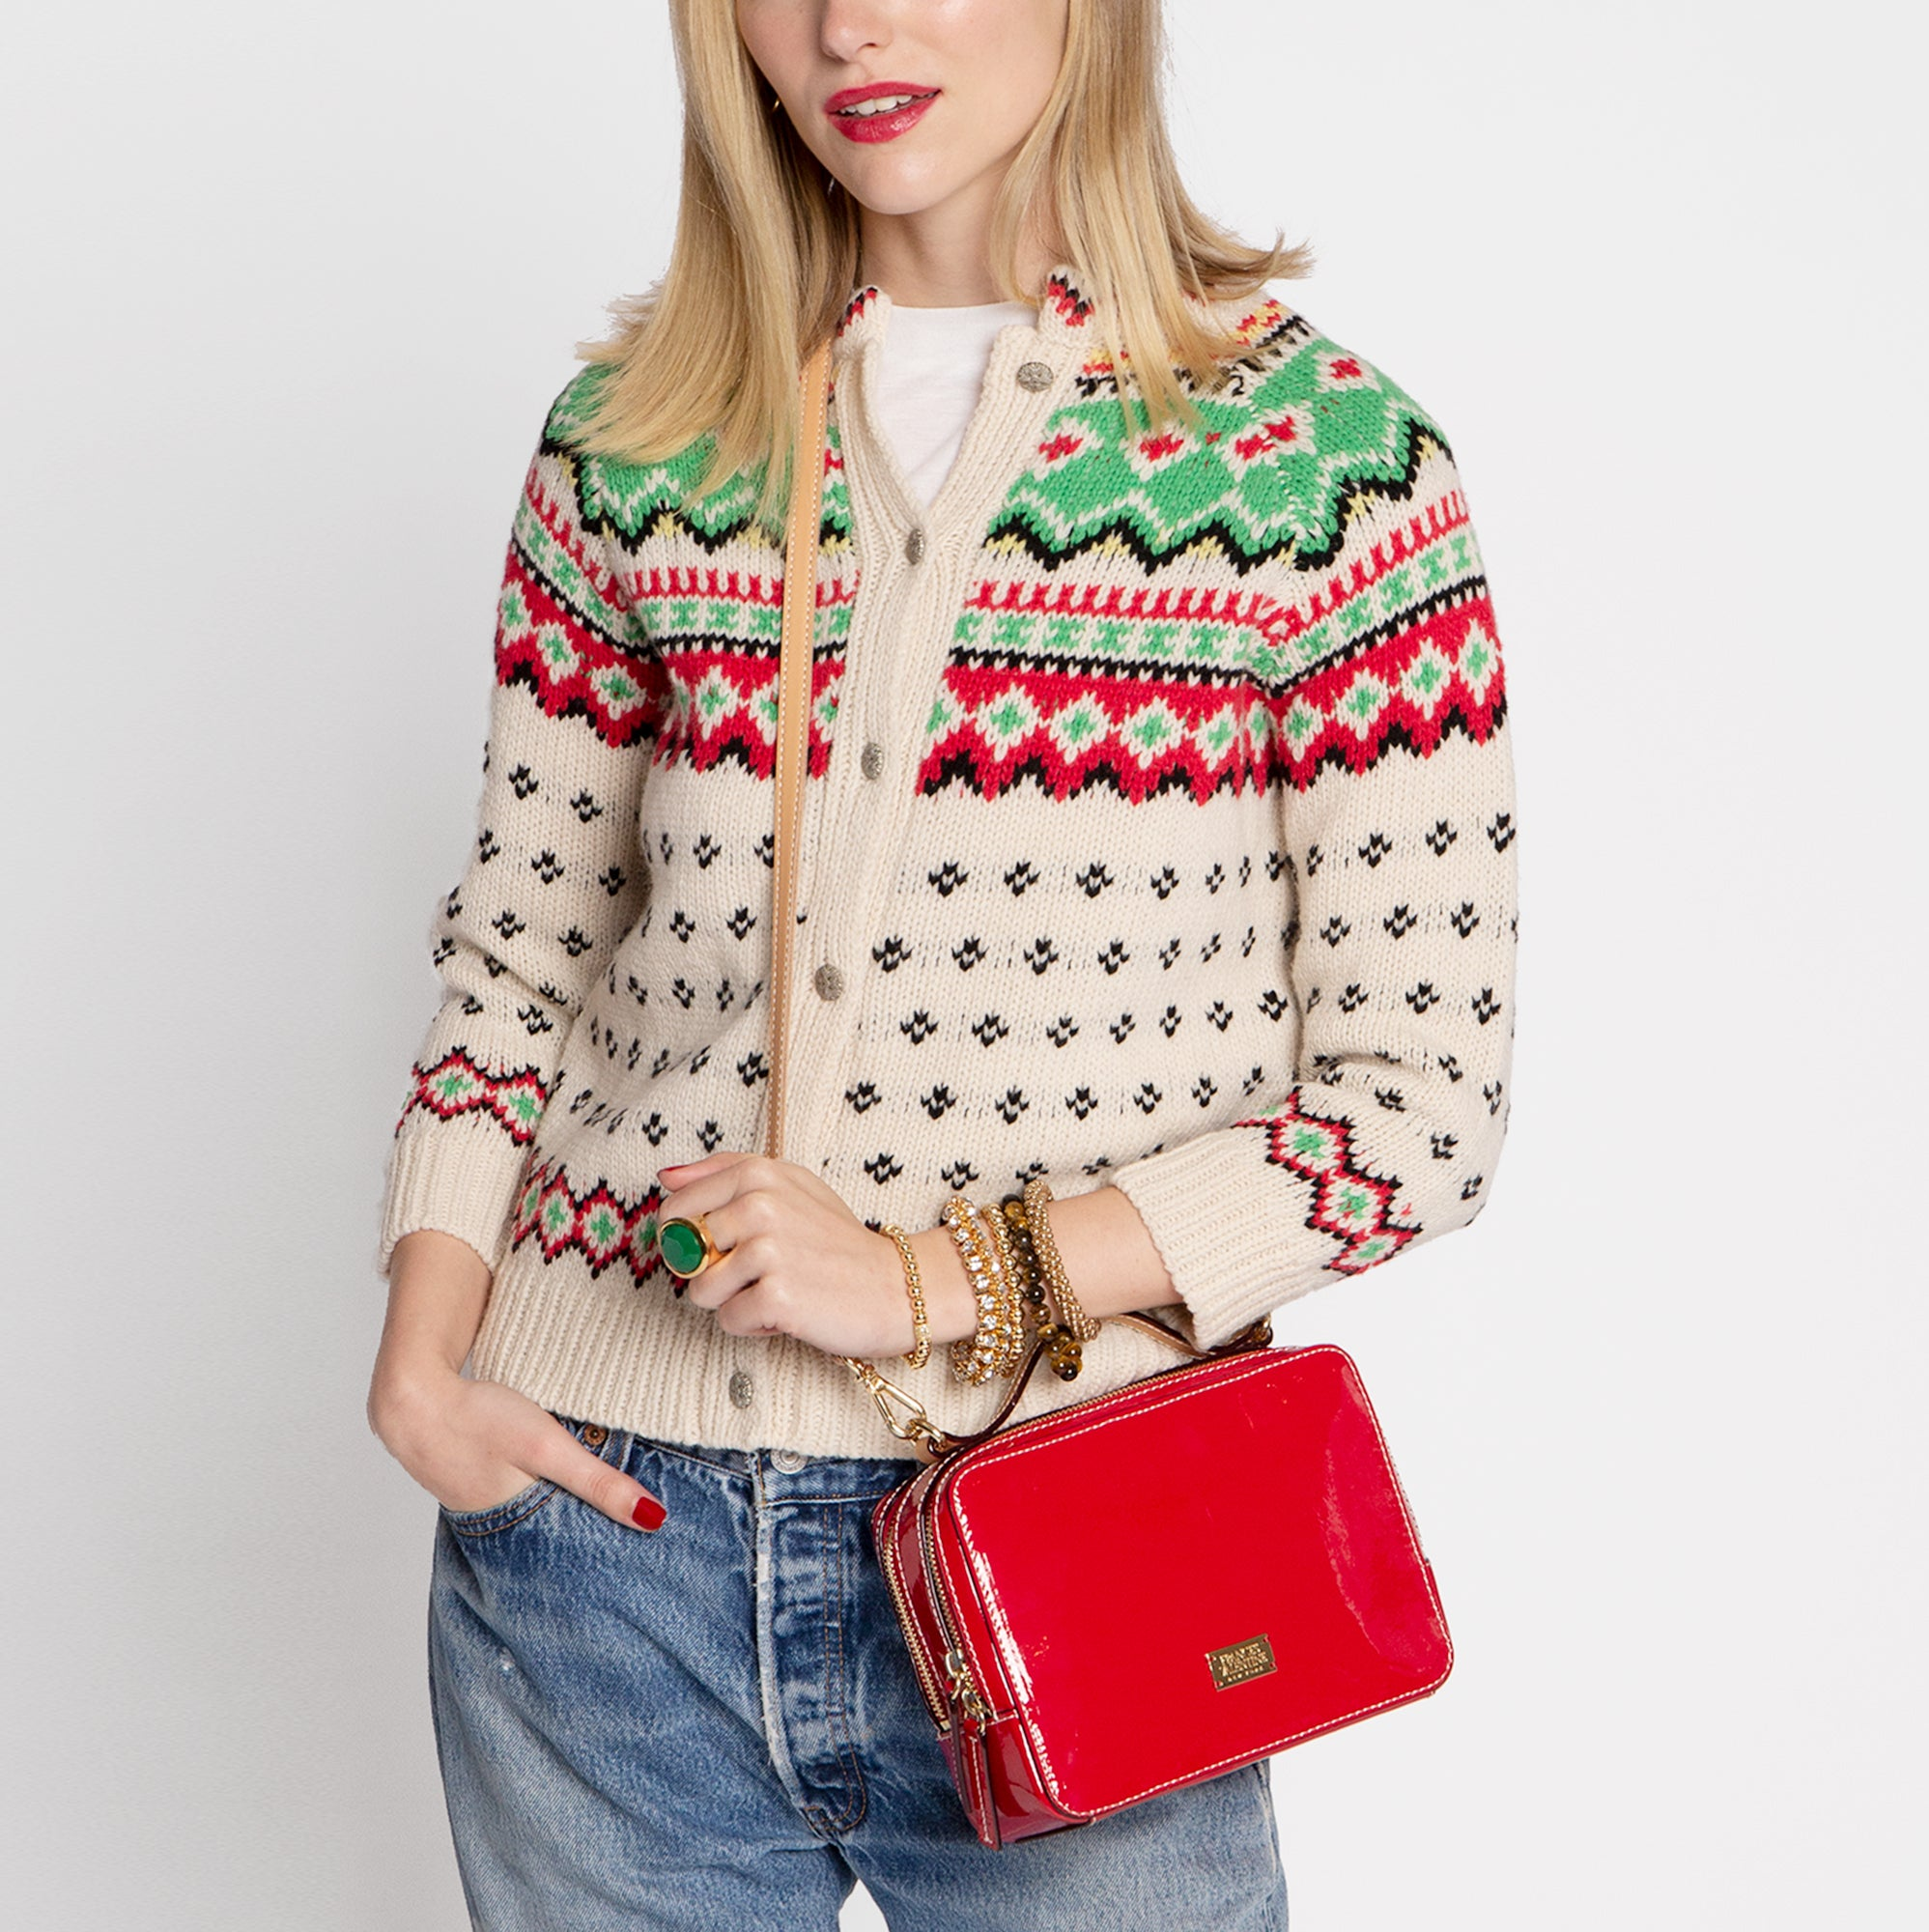 Fair Isle Cardigan Sweater - Frances Valentine